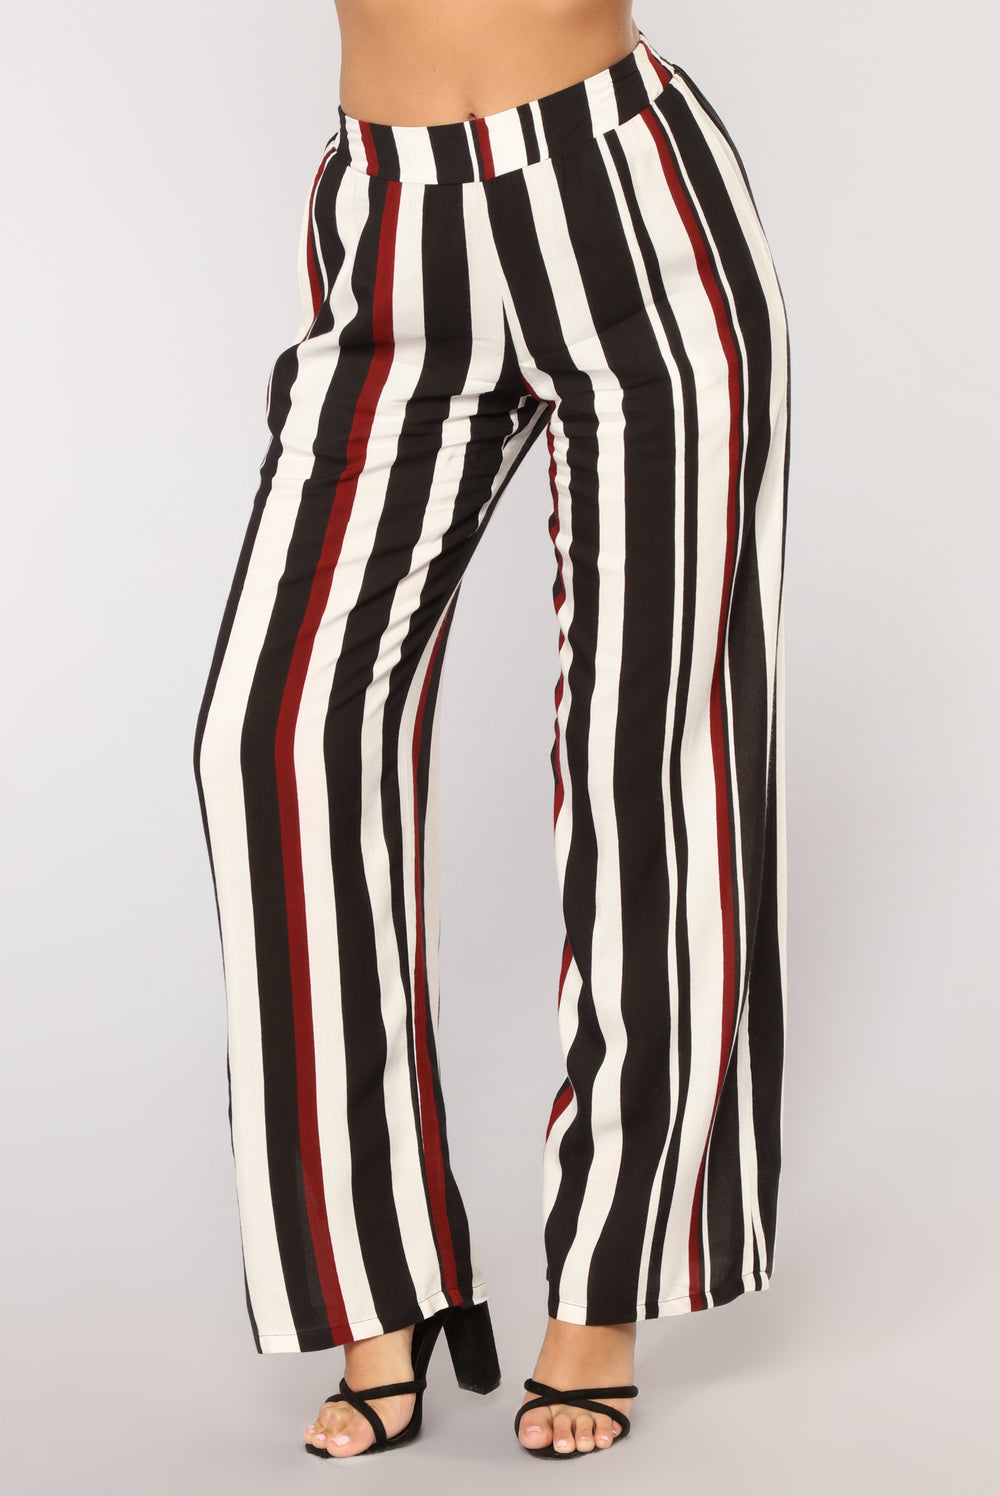 Shaney Stripe Pants - Black Multi